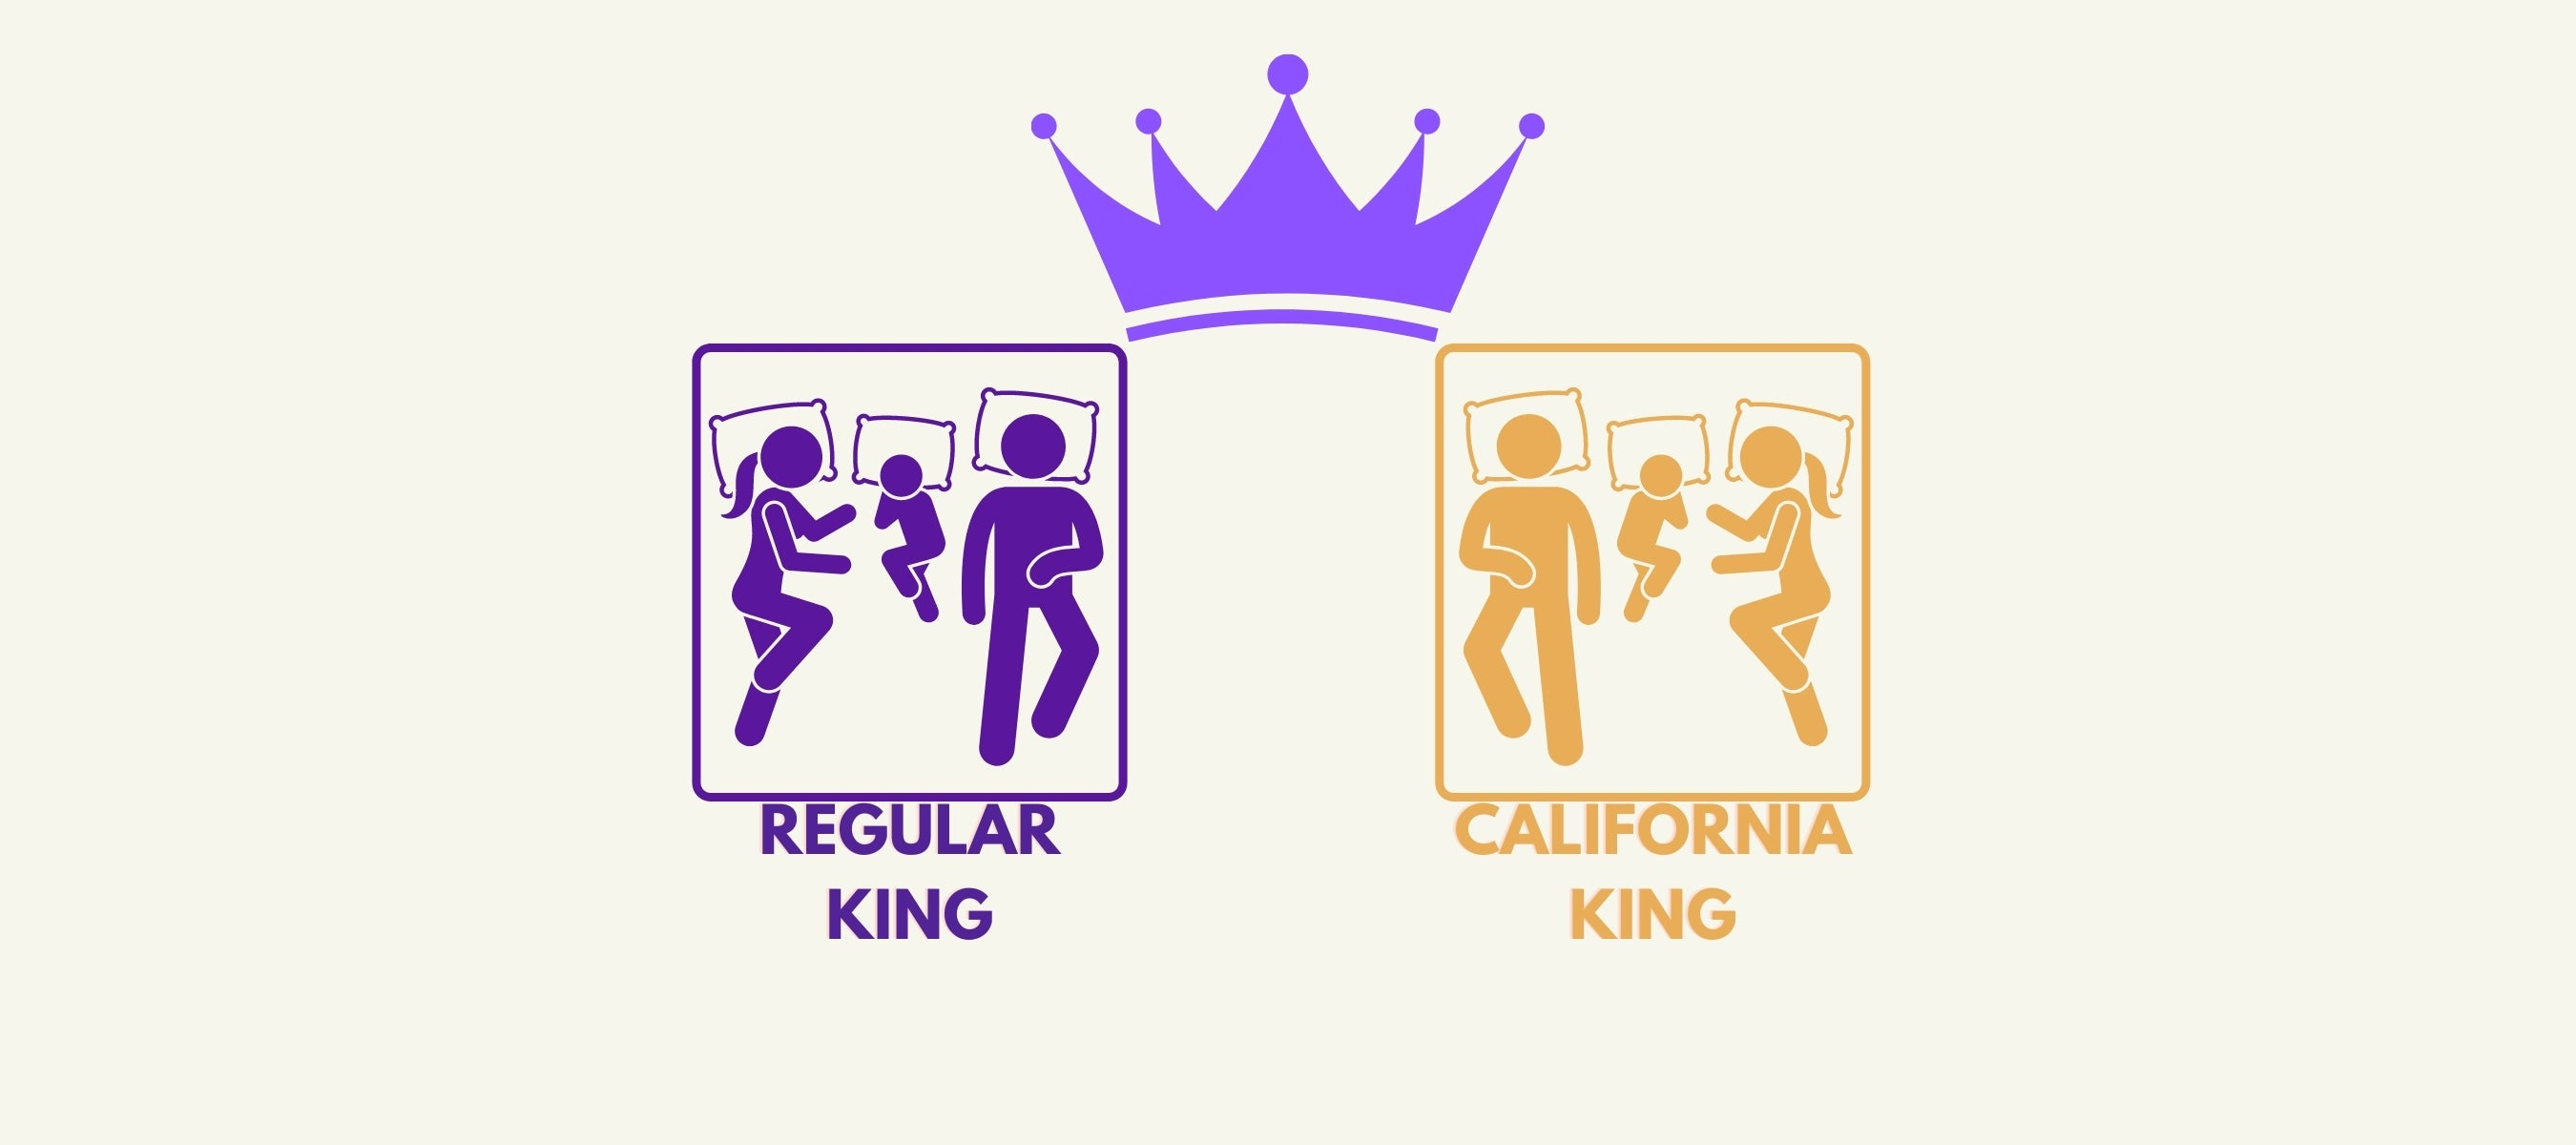 Two silhouettes of the purple regular king bed and the orange Californian king bed facing each other with a crown above